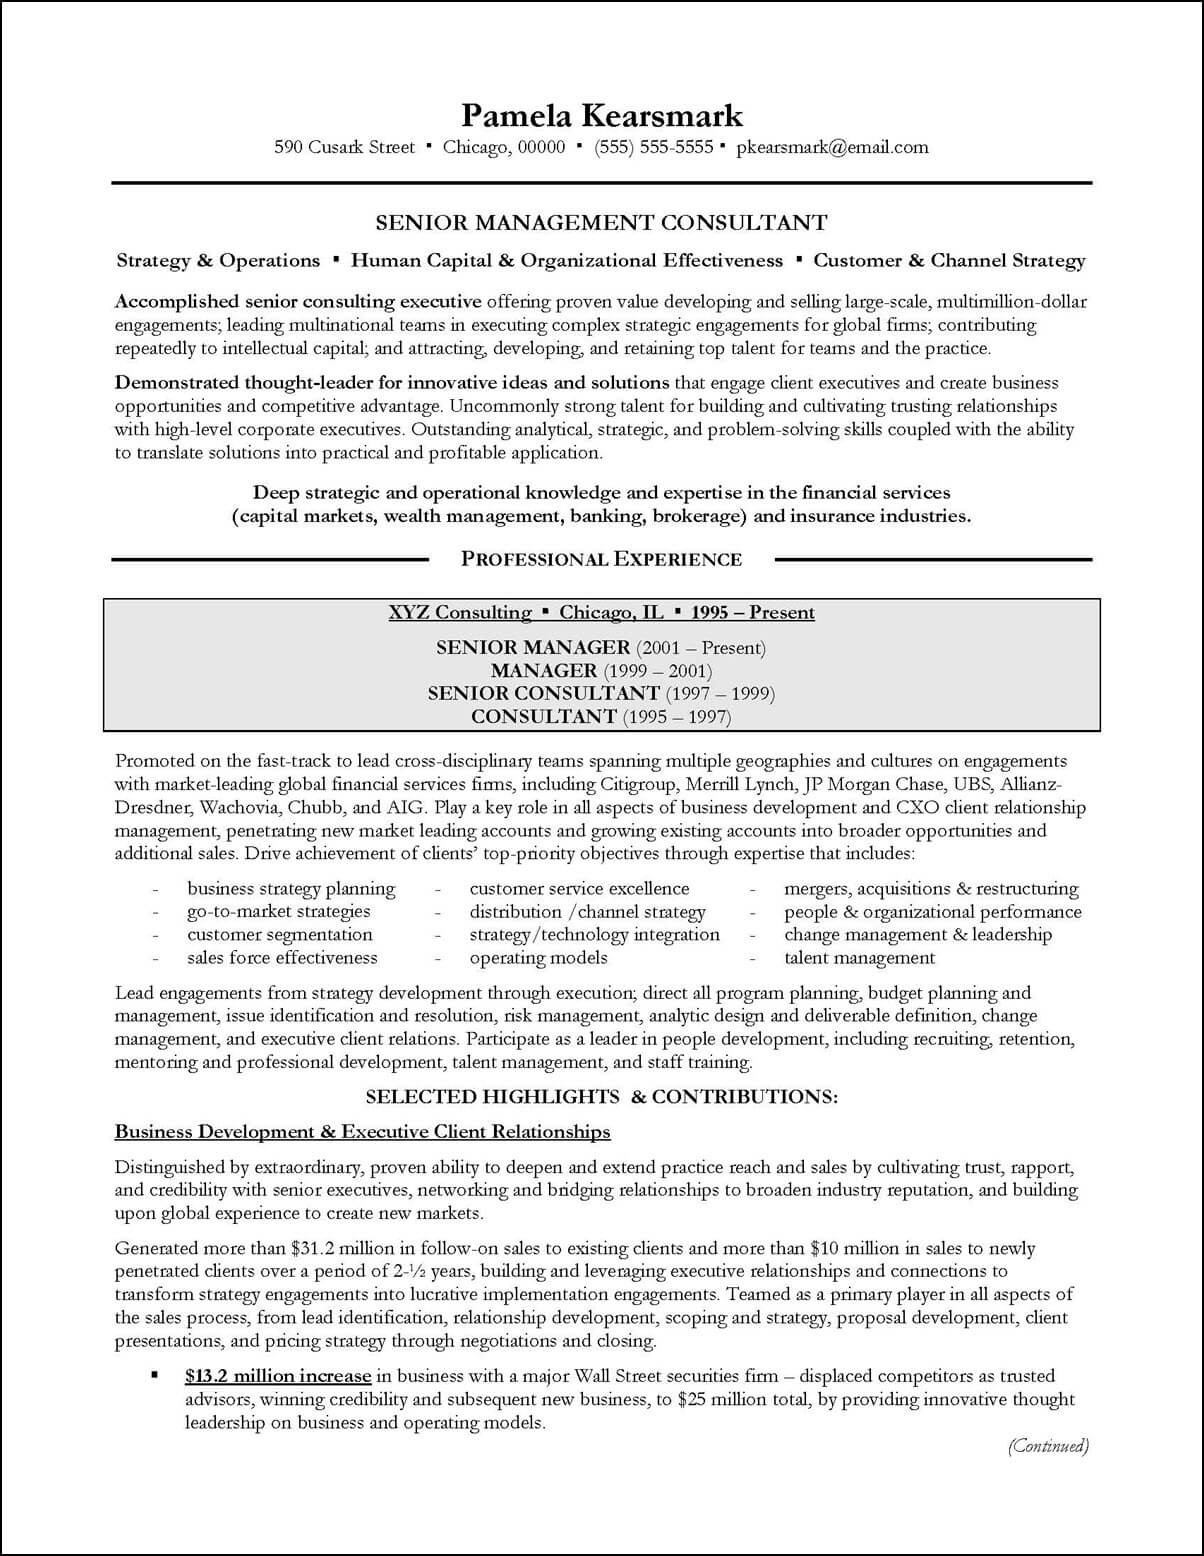 consulting resume management consulting resume example - Business Management Consultant Sample Resume